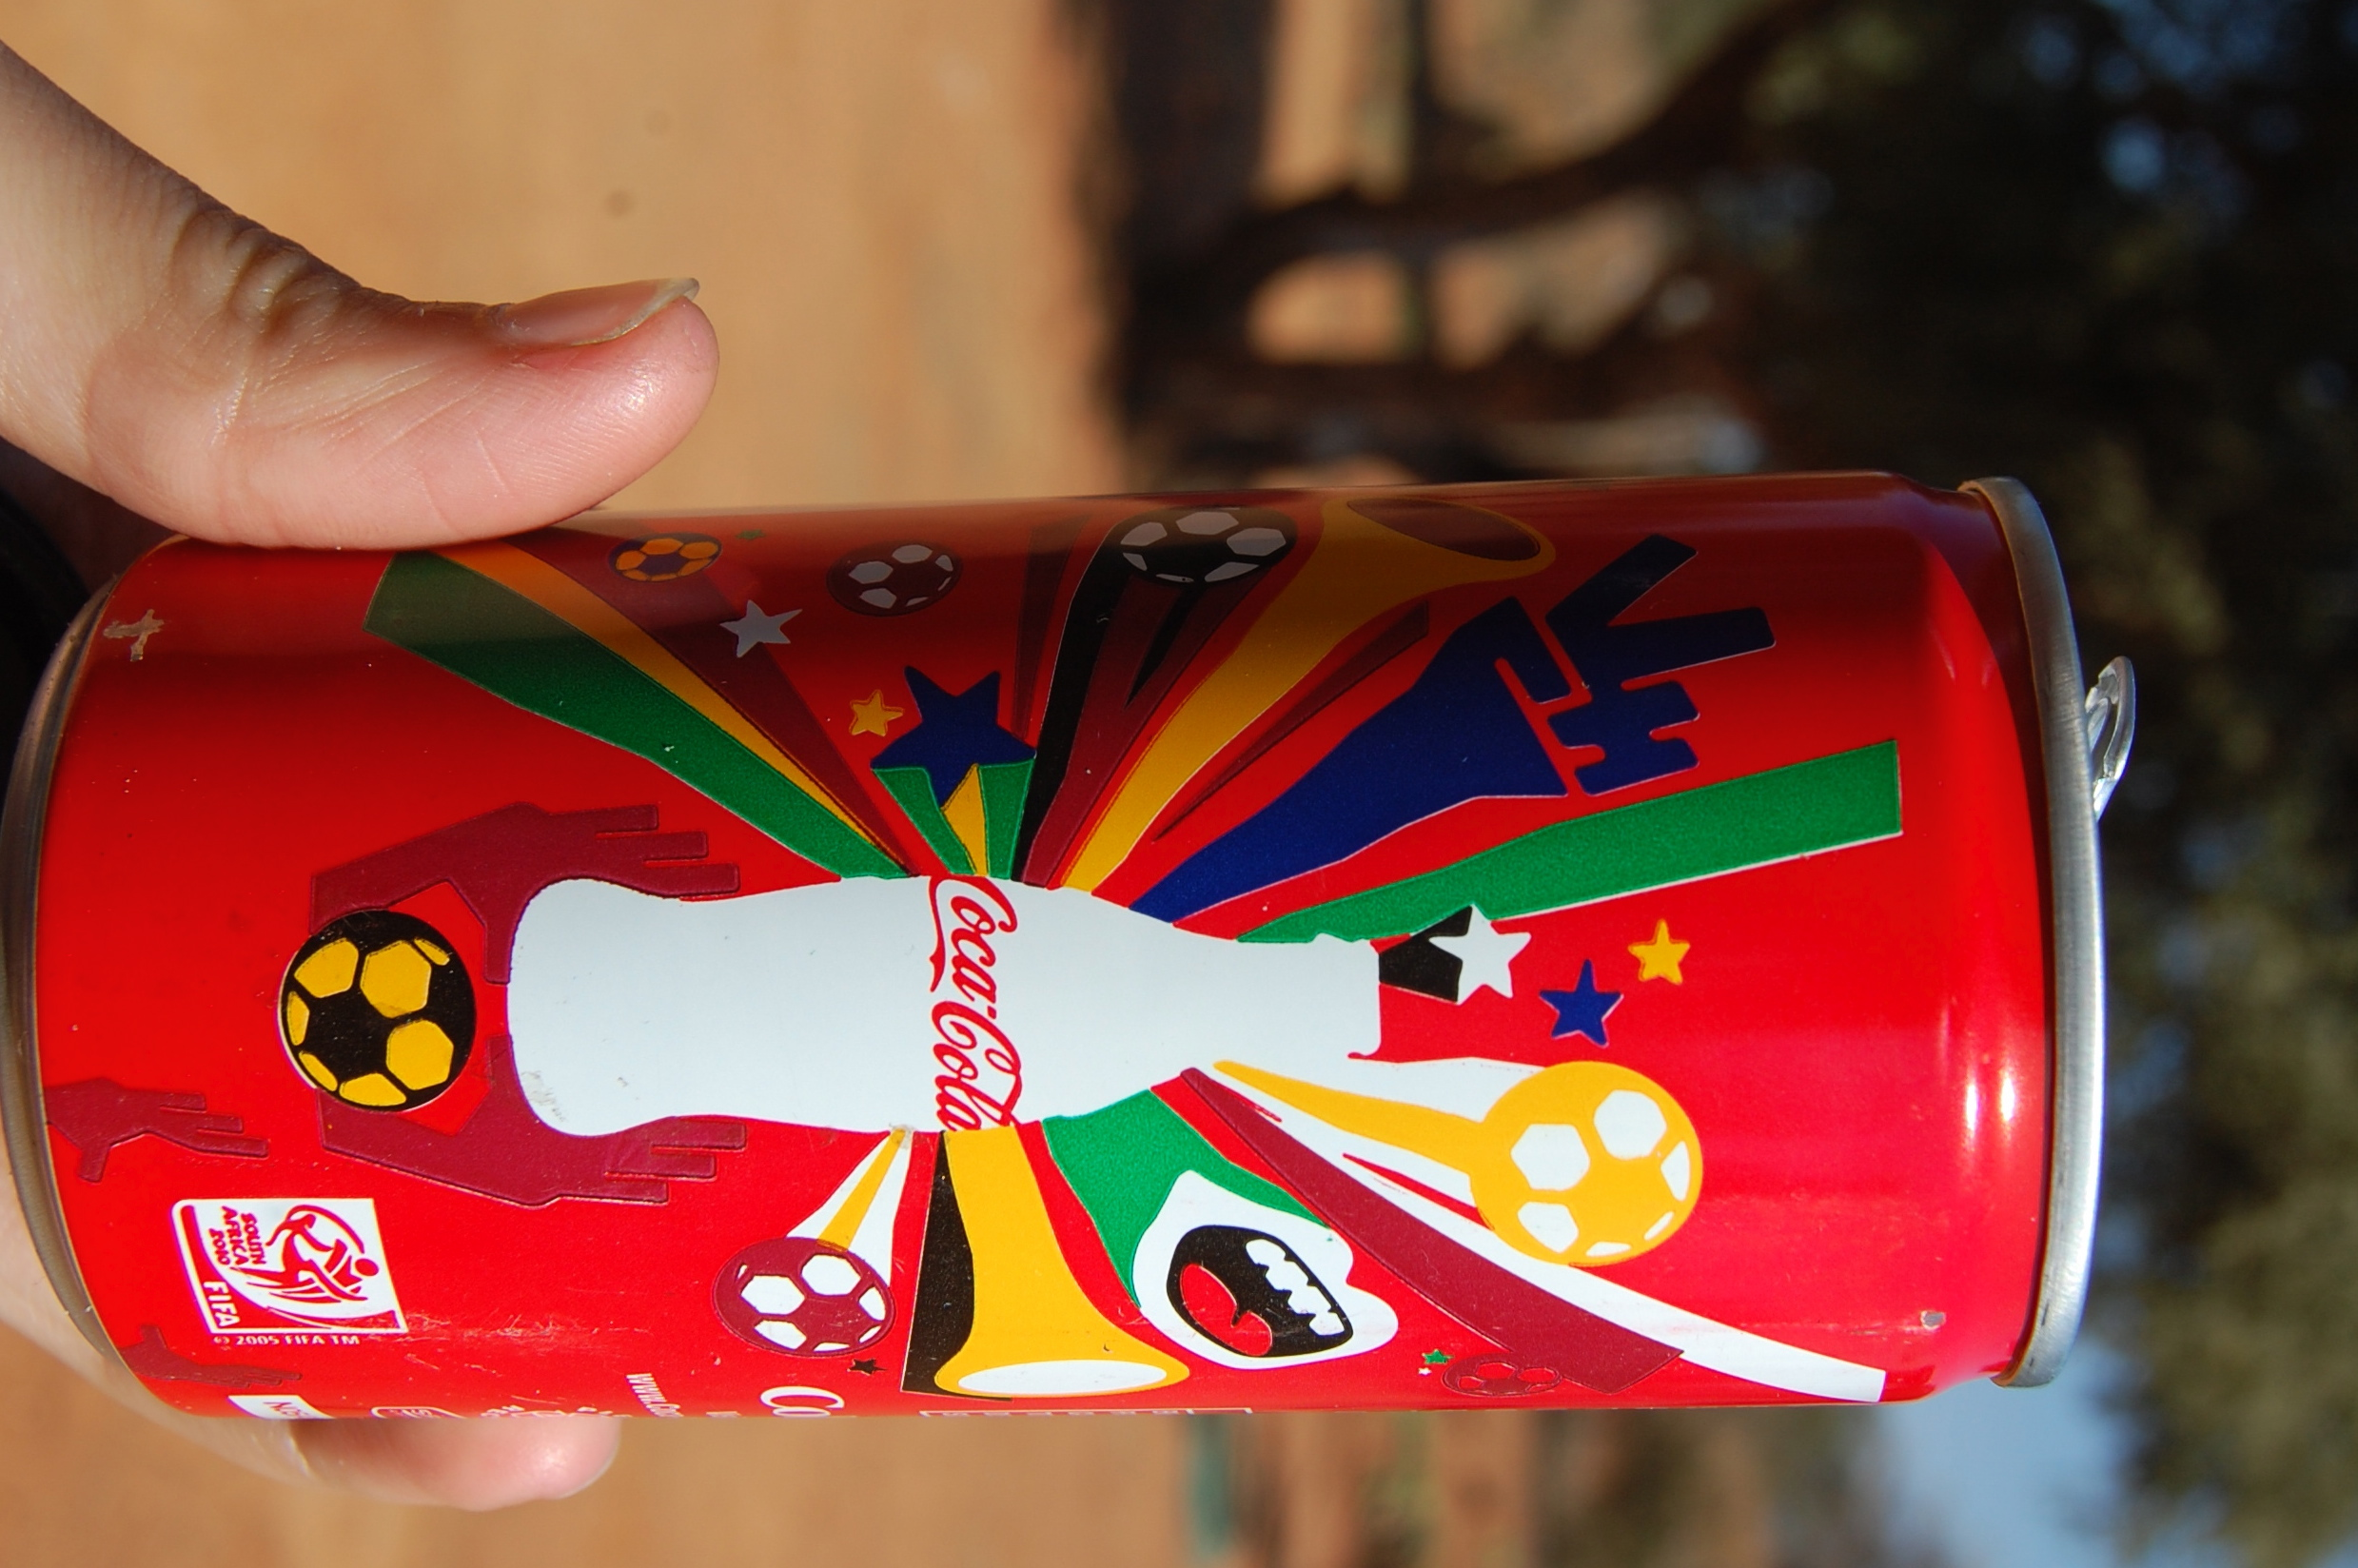 FIFA World Cup 2010 Special Edition Coca Cola